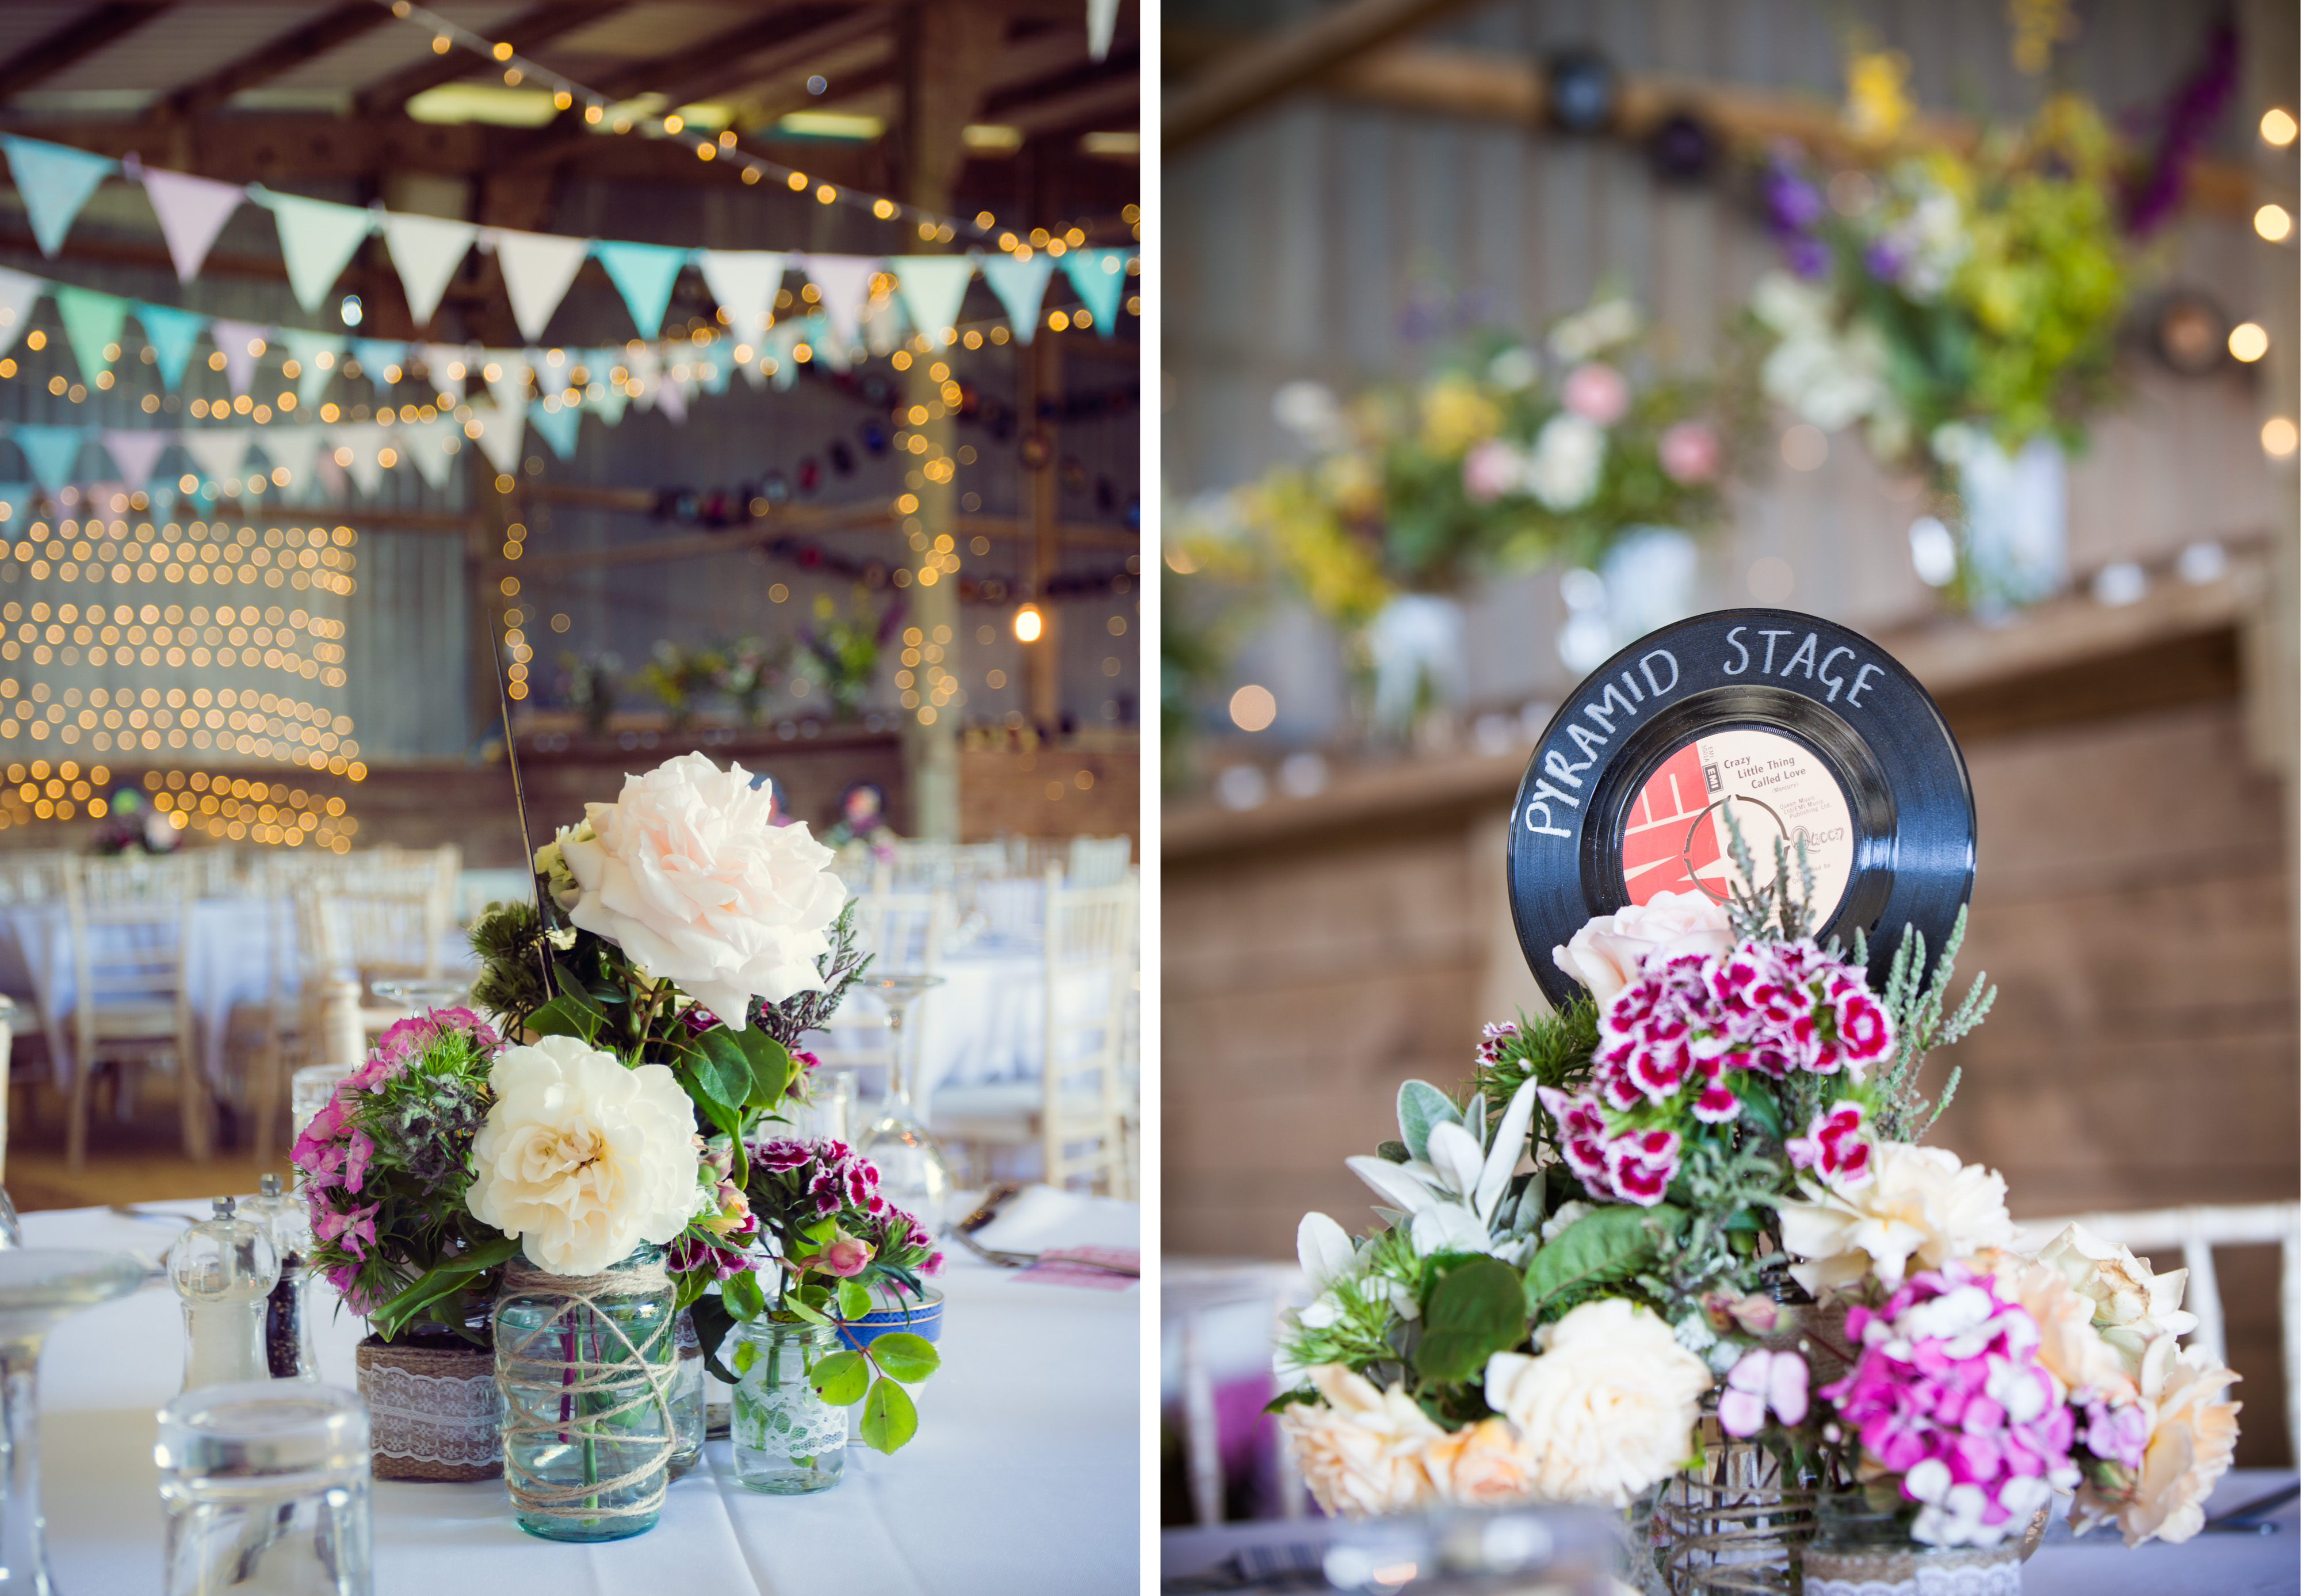 47_home made rustic wedding decoration in a barn